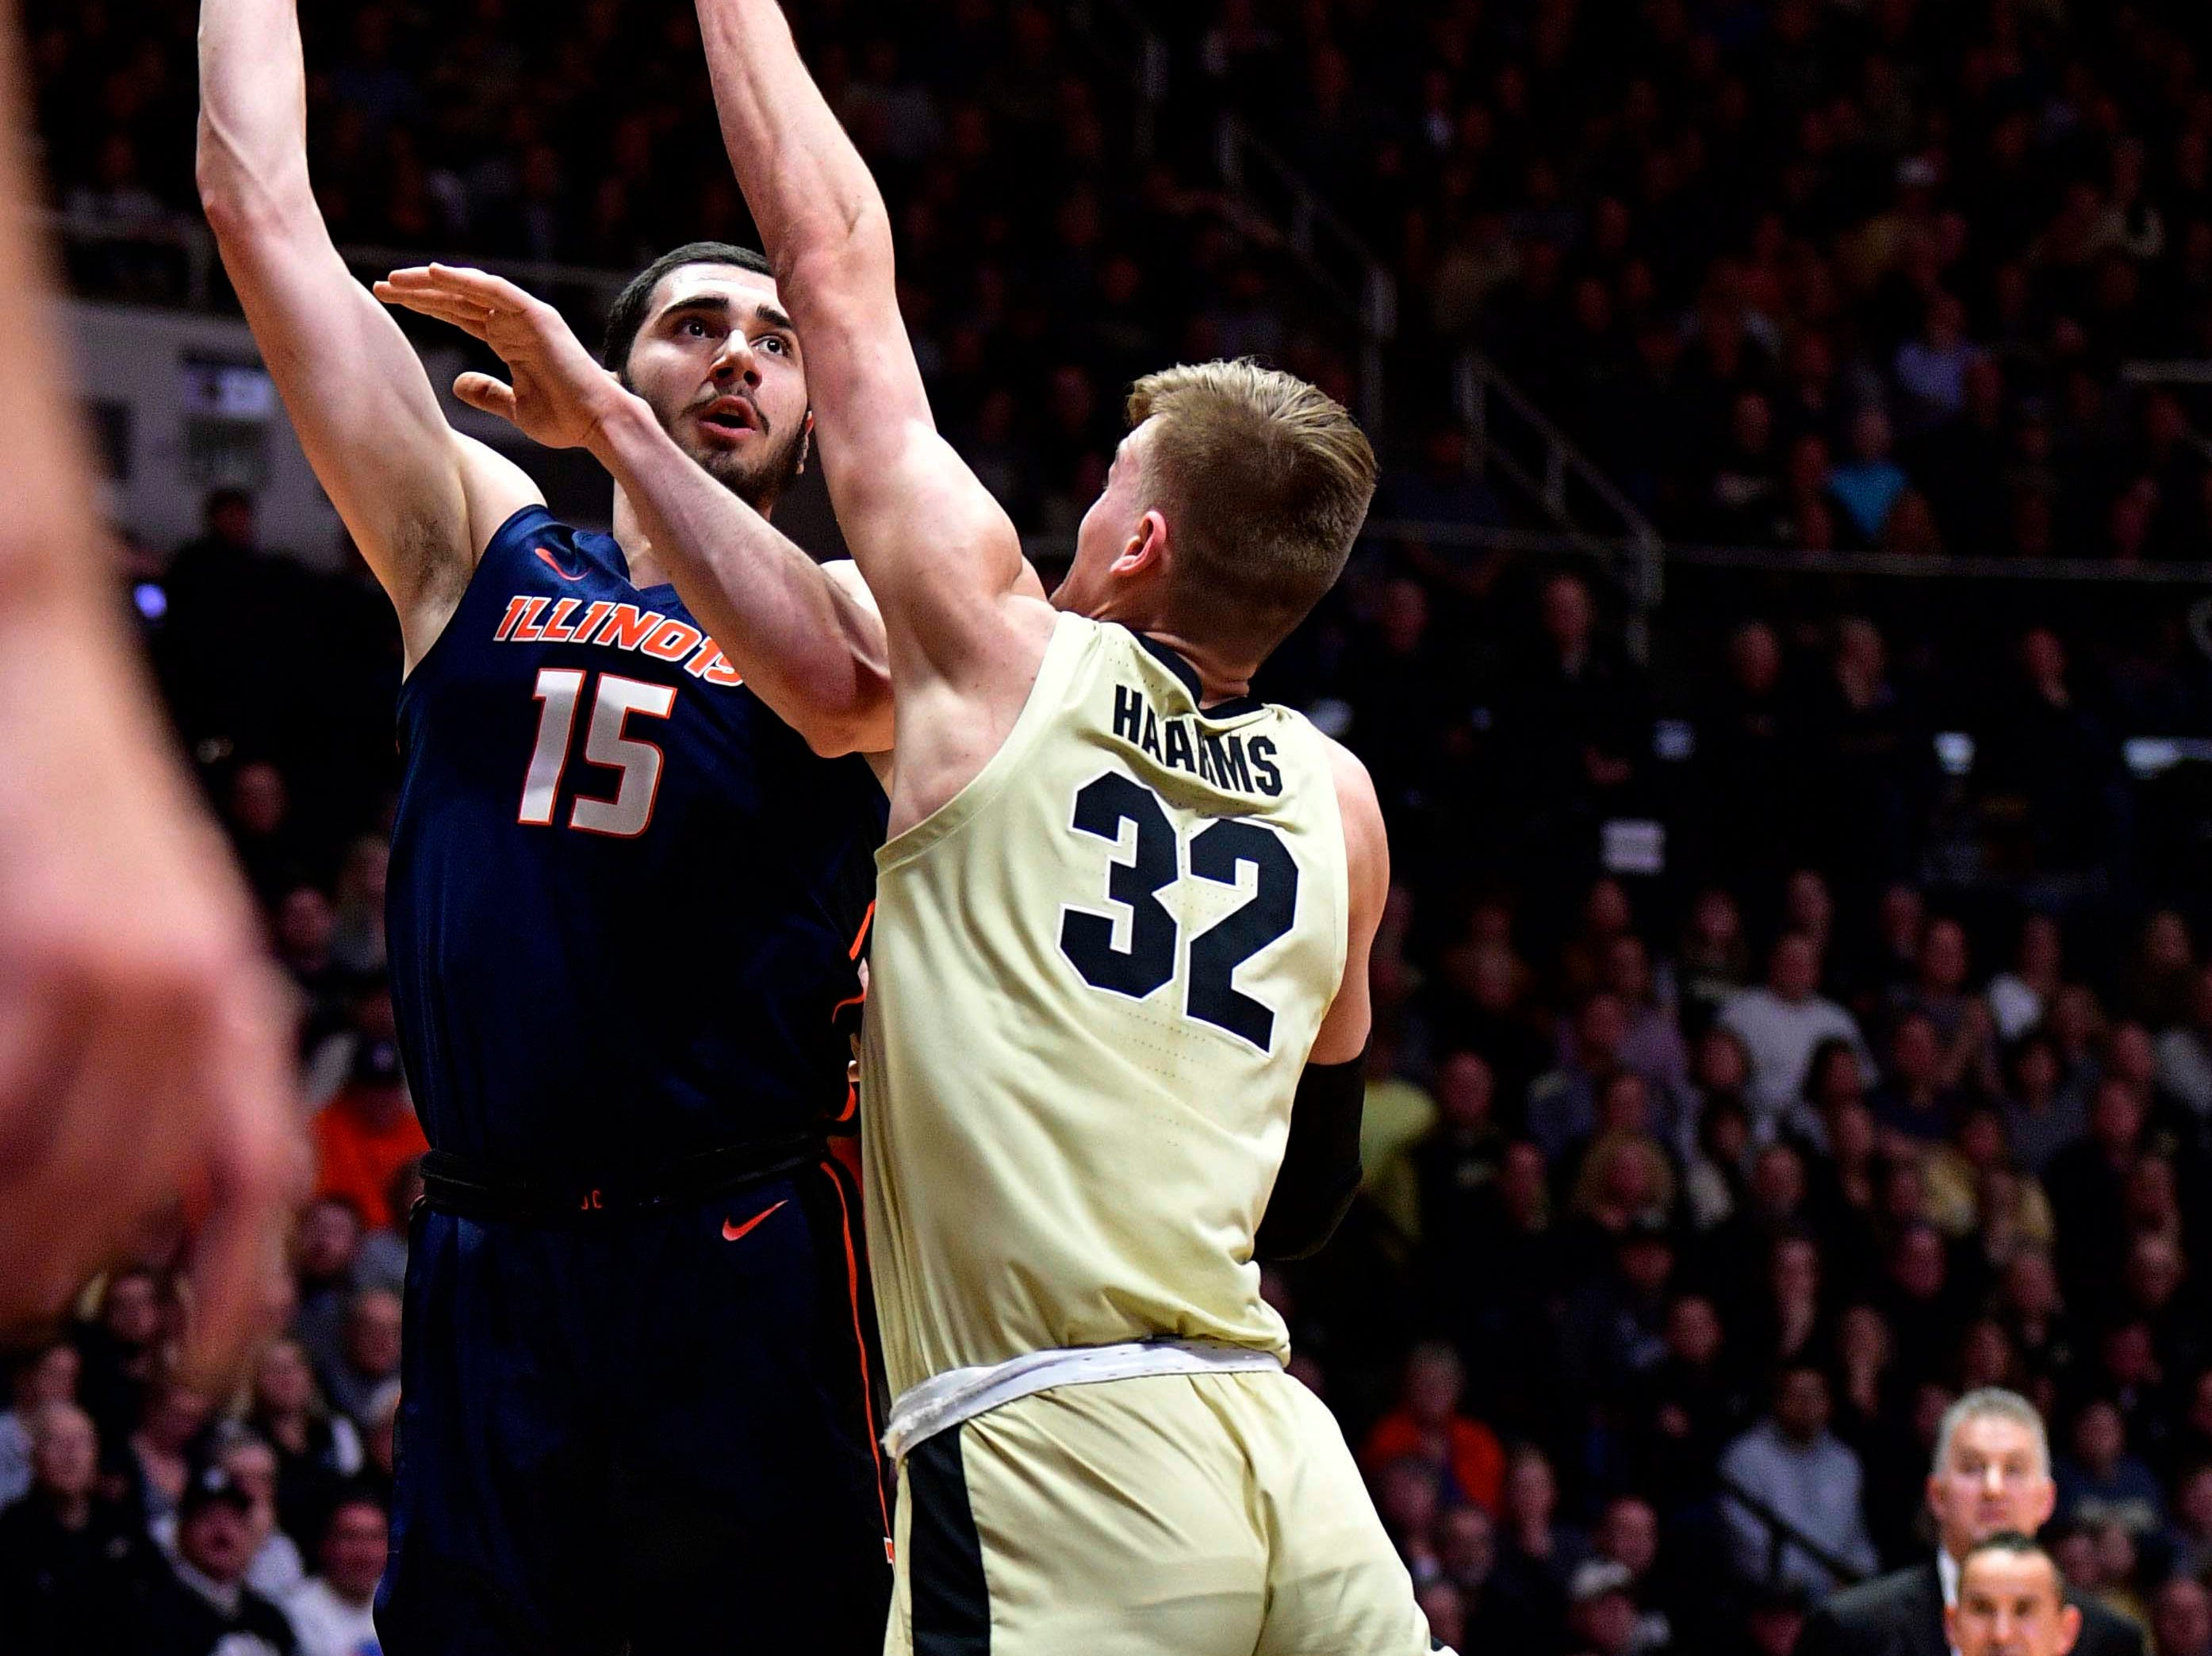 Feb 27, 2019; West Lafayette, IN, USA; Illinois Fighting Illini forward Giorgi Bezhanishvili (15) shoots a shot over Purdue Boilermakers center Matt Haarms (32) during the first half of the game at Mackey Arena. Mandatory Credit: Marc Lebryk-USA TODAY Sports